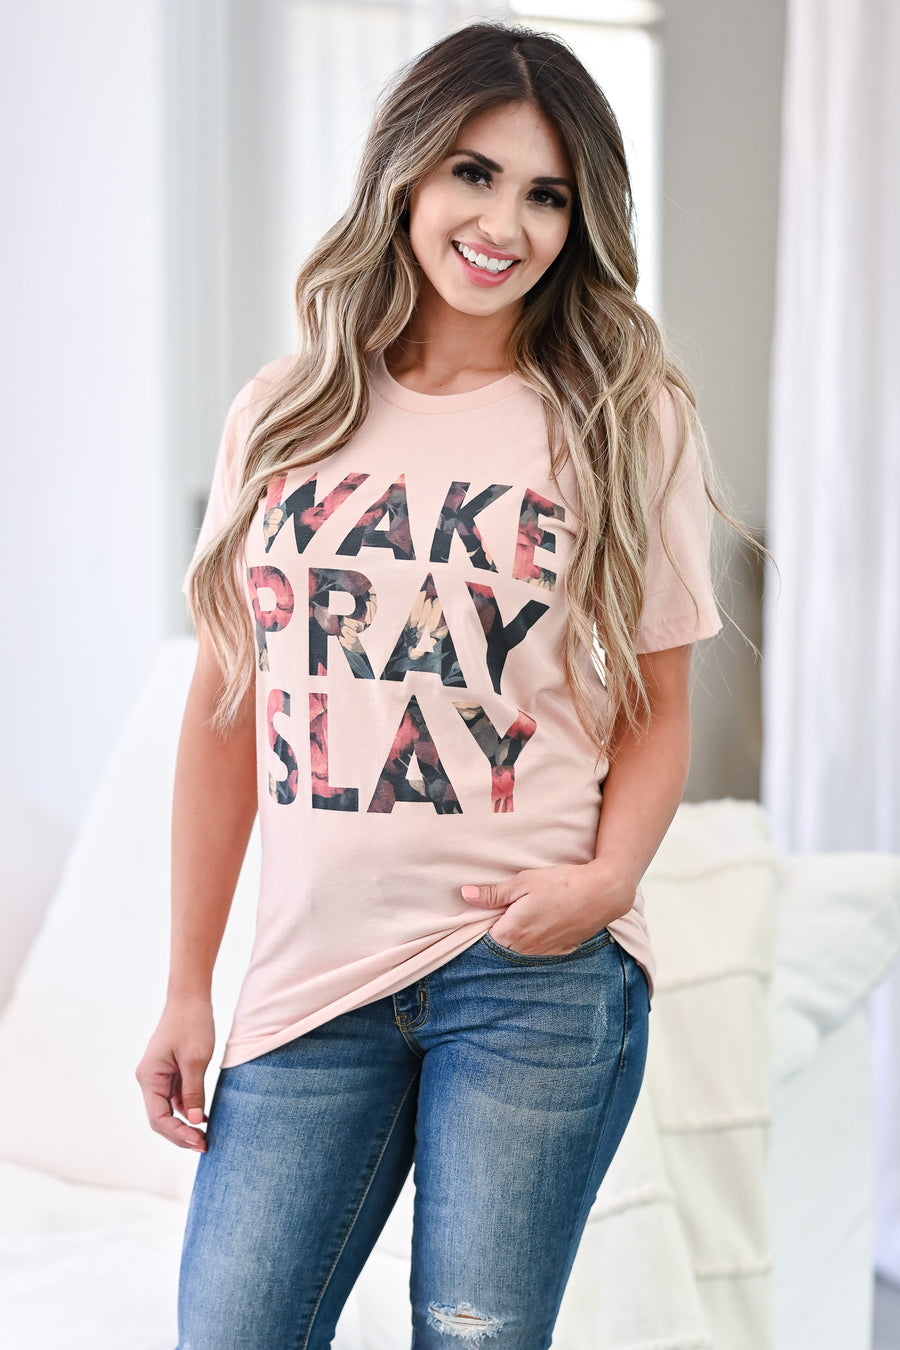 """Wake Pray Slay"" Graphic Tee - Blush faith based round neckline t shirt closet candy sitting"